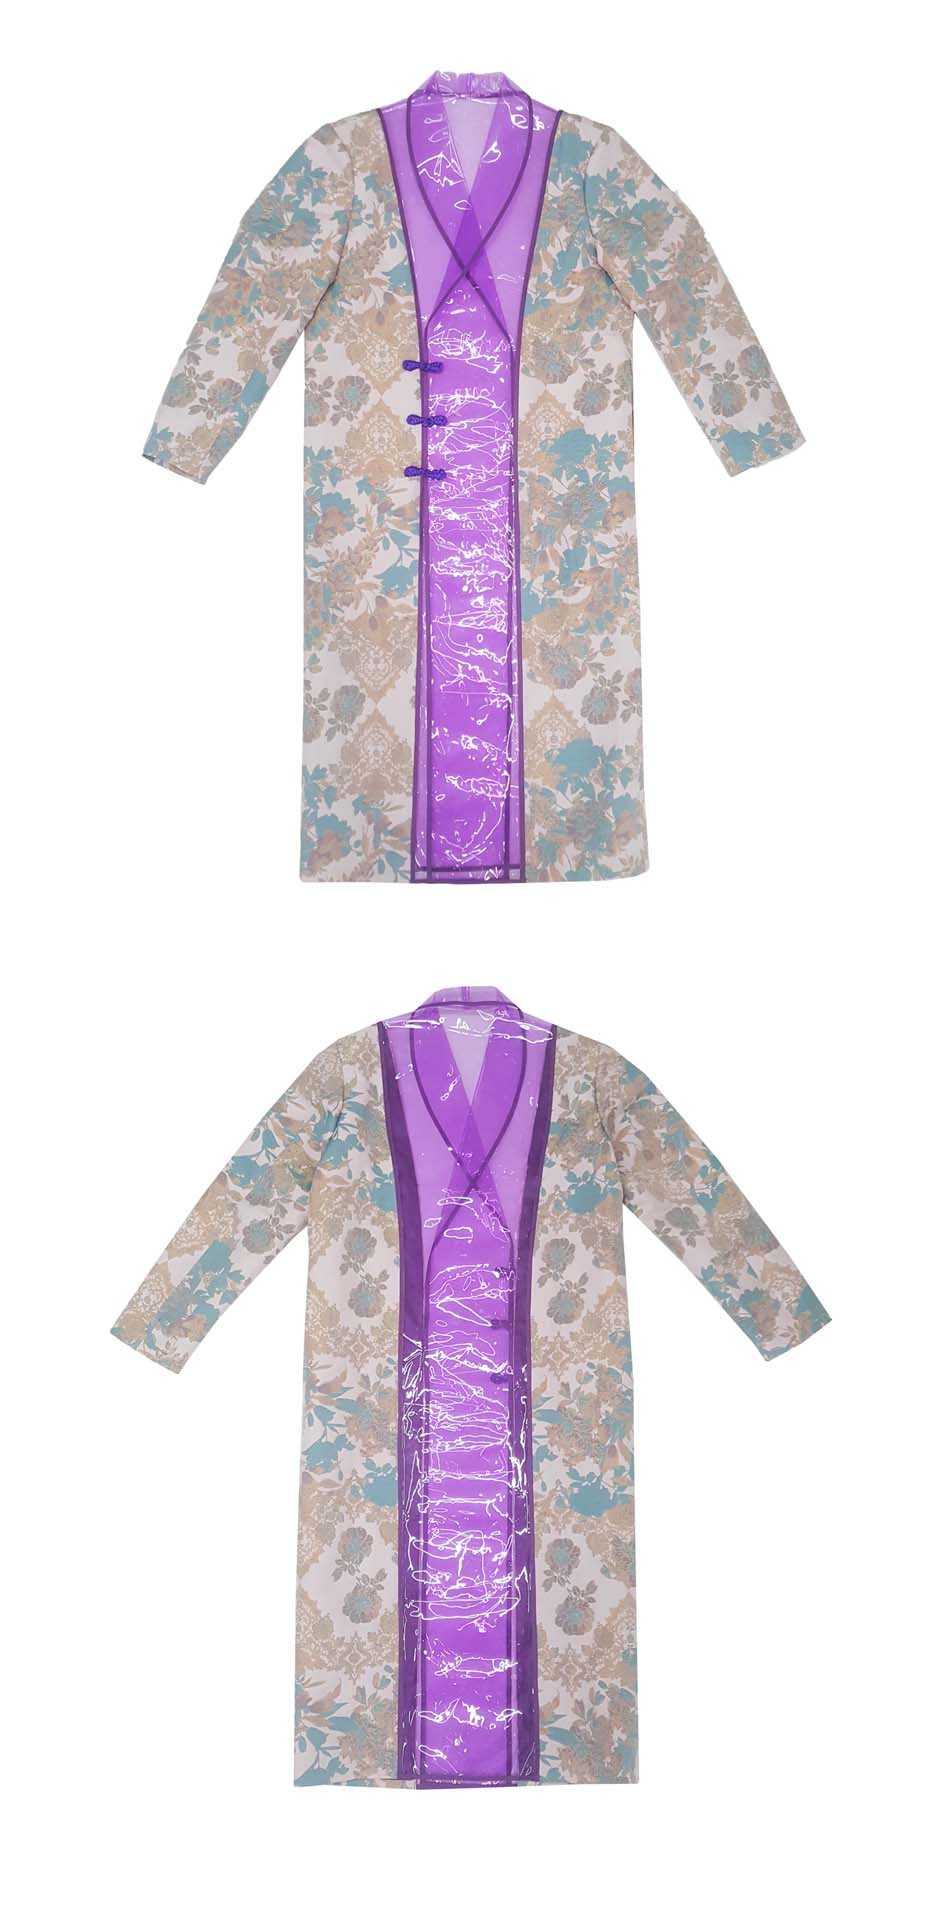 YOIKADAKADA 2018FW independent design show embroidery PVC stitching cyber wind transparent long windbreaker